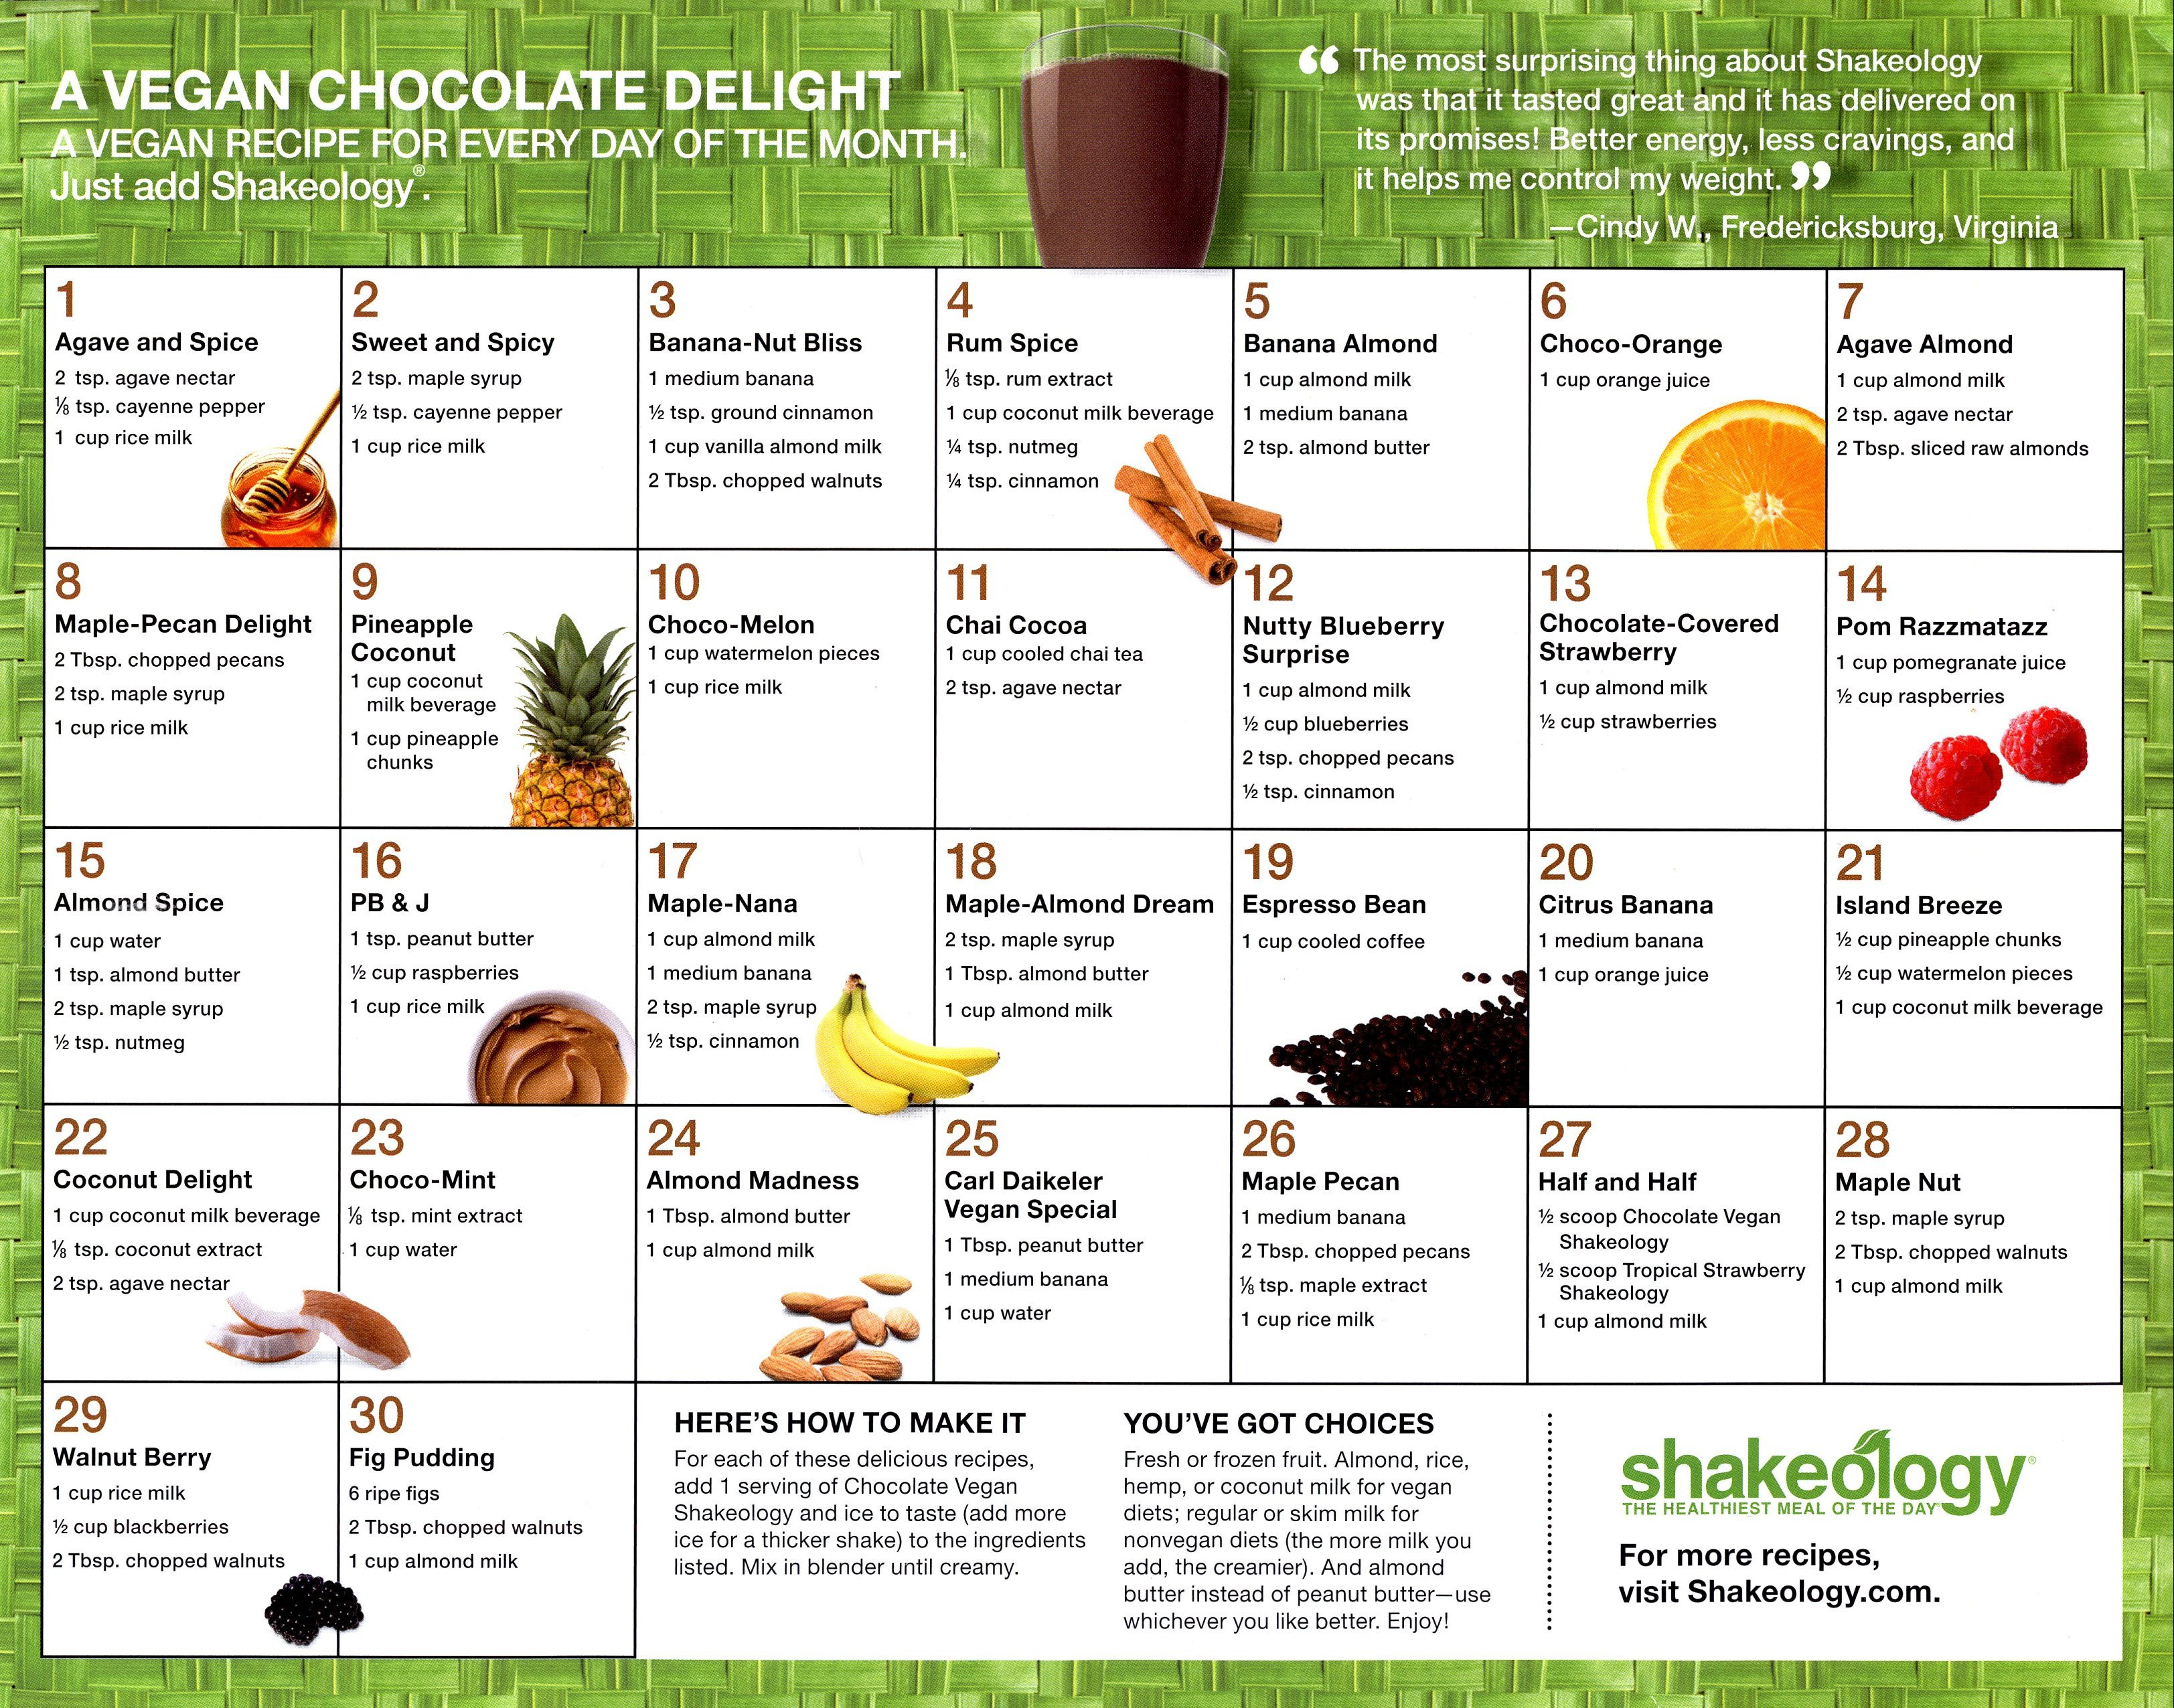 Shakeology Vegan Chocolate Recipes  Vegan Chocolate Shakeology